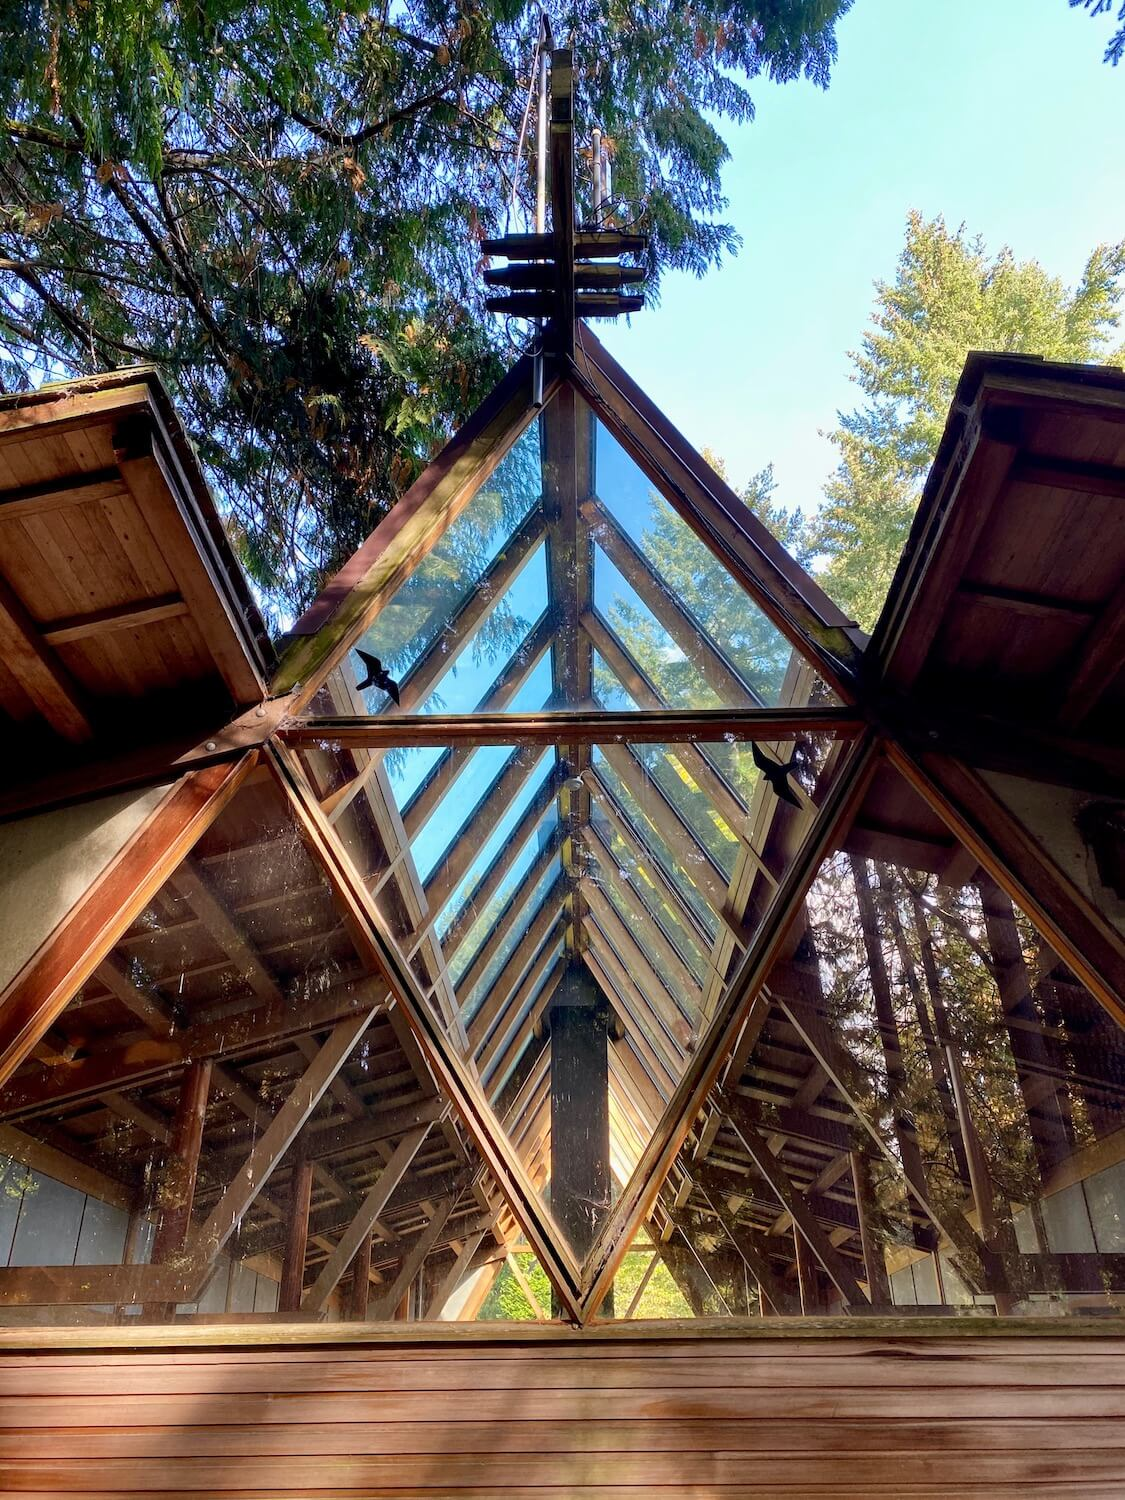 The Japanese Guest House at Bloedel Reserve is iconic with the geometric structure of wood beams filled with glass and rises at a peak to open up to the blue sky and fir tree above.